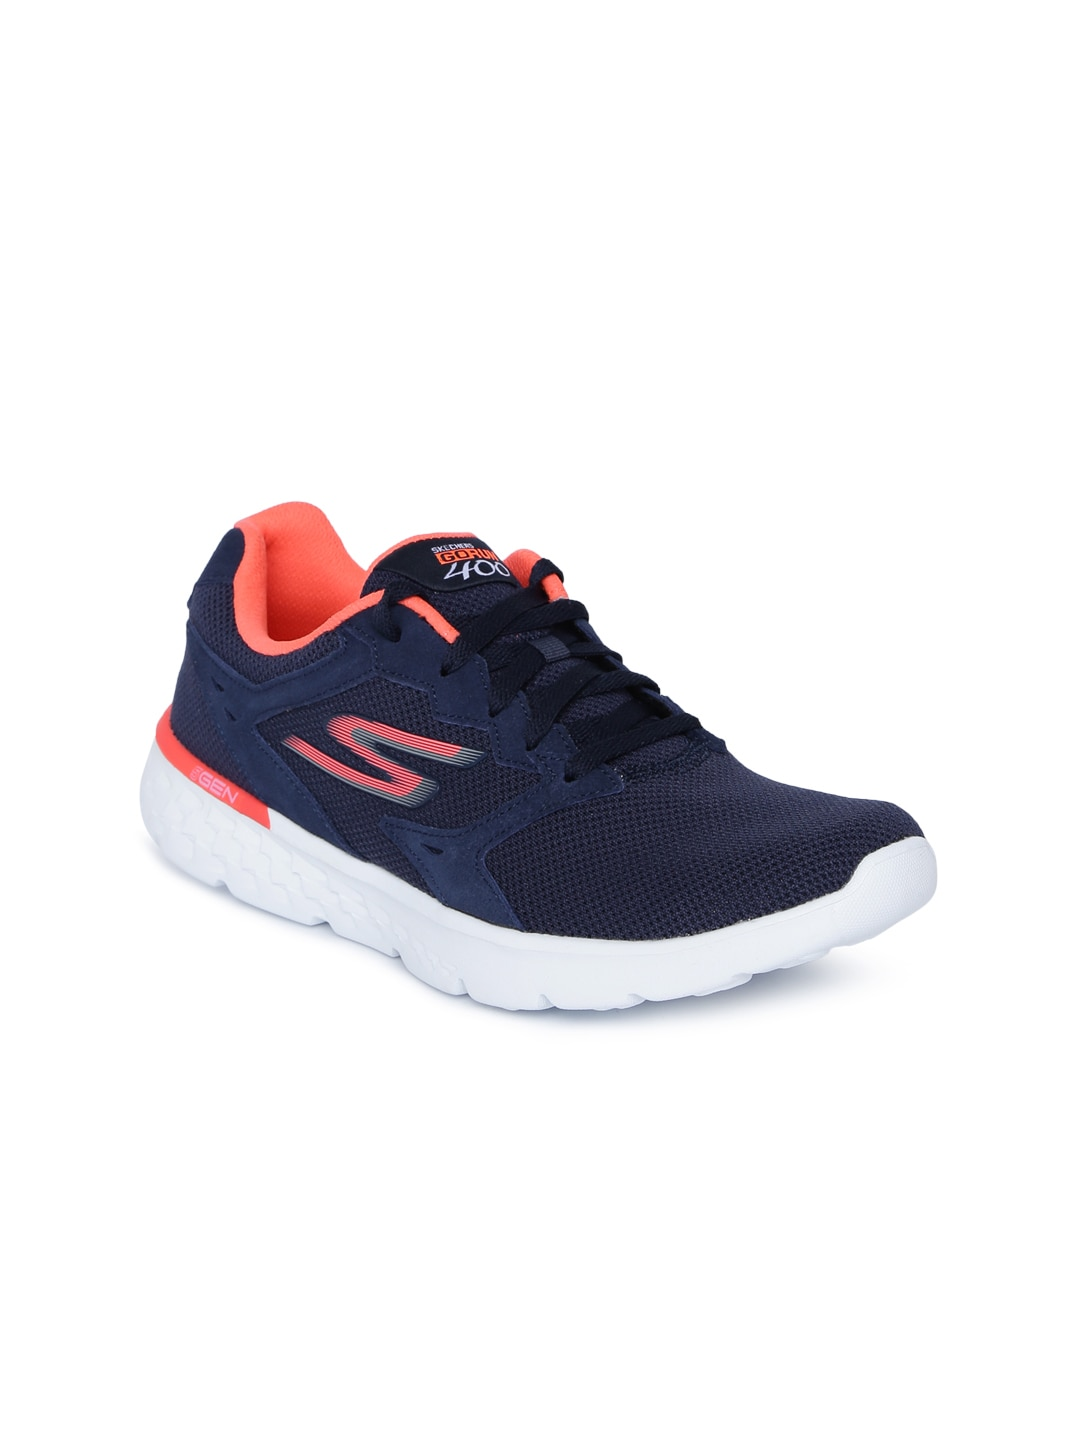 d1f65f08c2bc Skechers - Buy Skechers Footwear Online at Best Prices